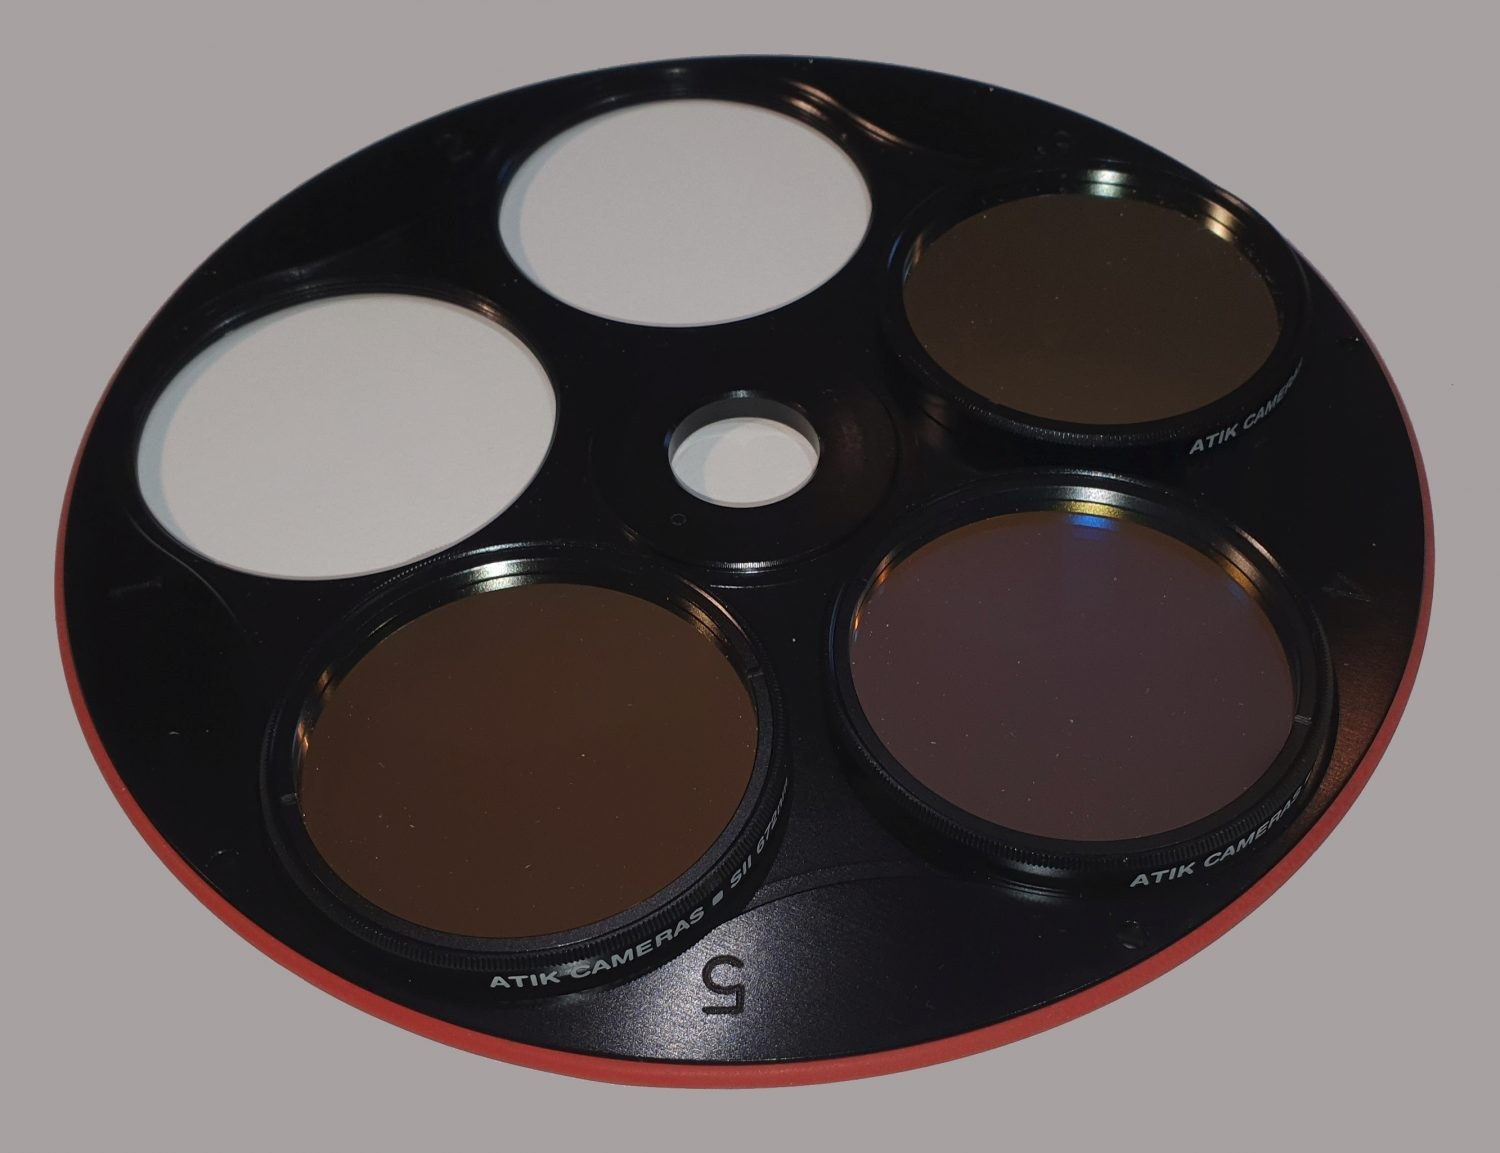 Atik Narrowband Filter Set in filter wheel